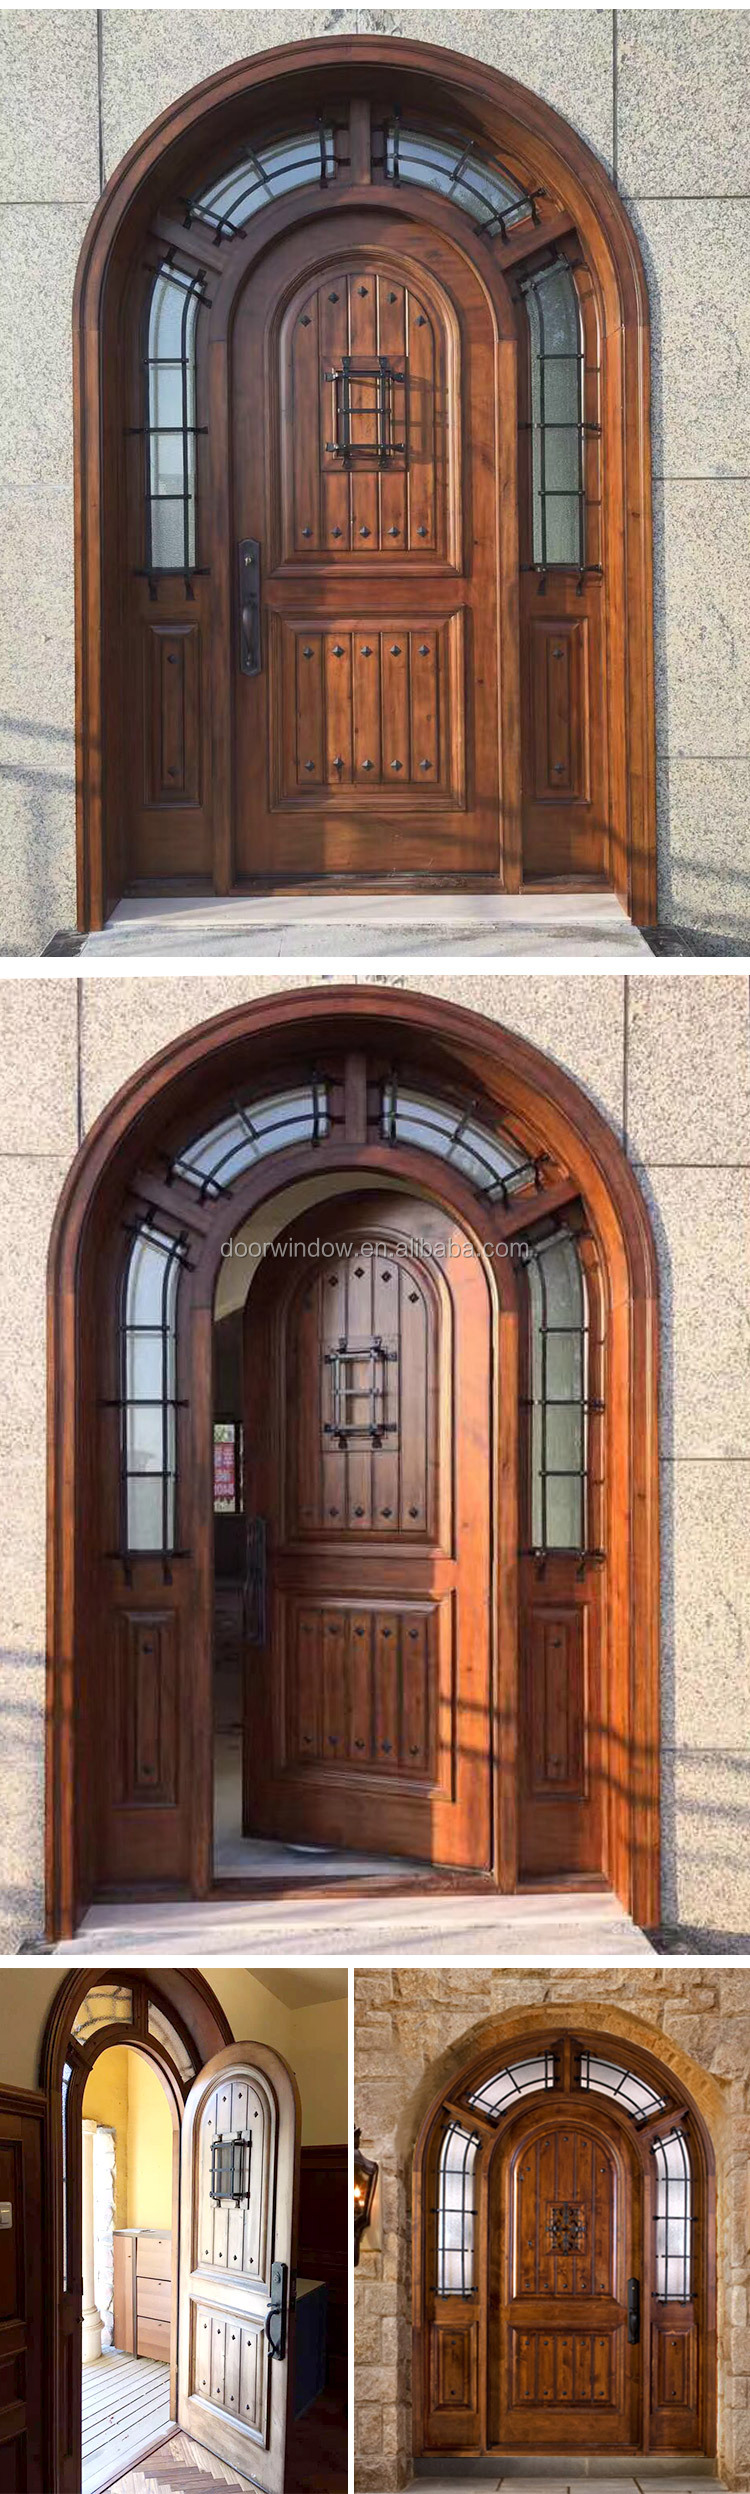 Custom front main gate design security solid wood entry door